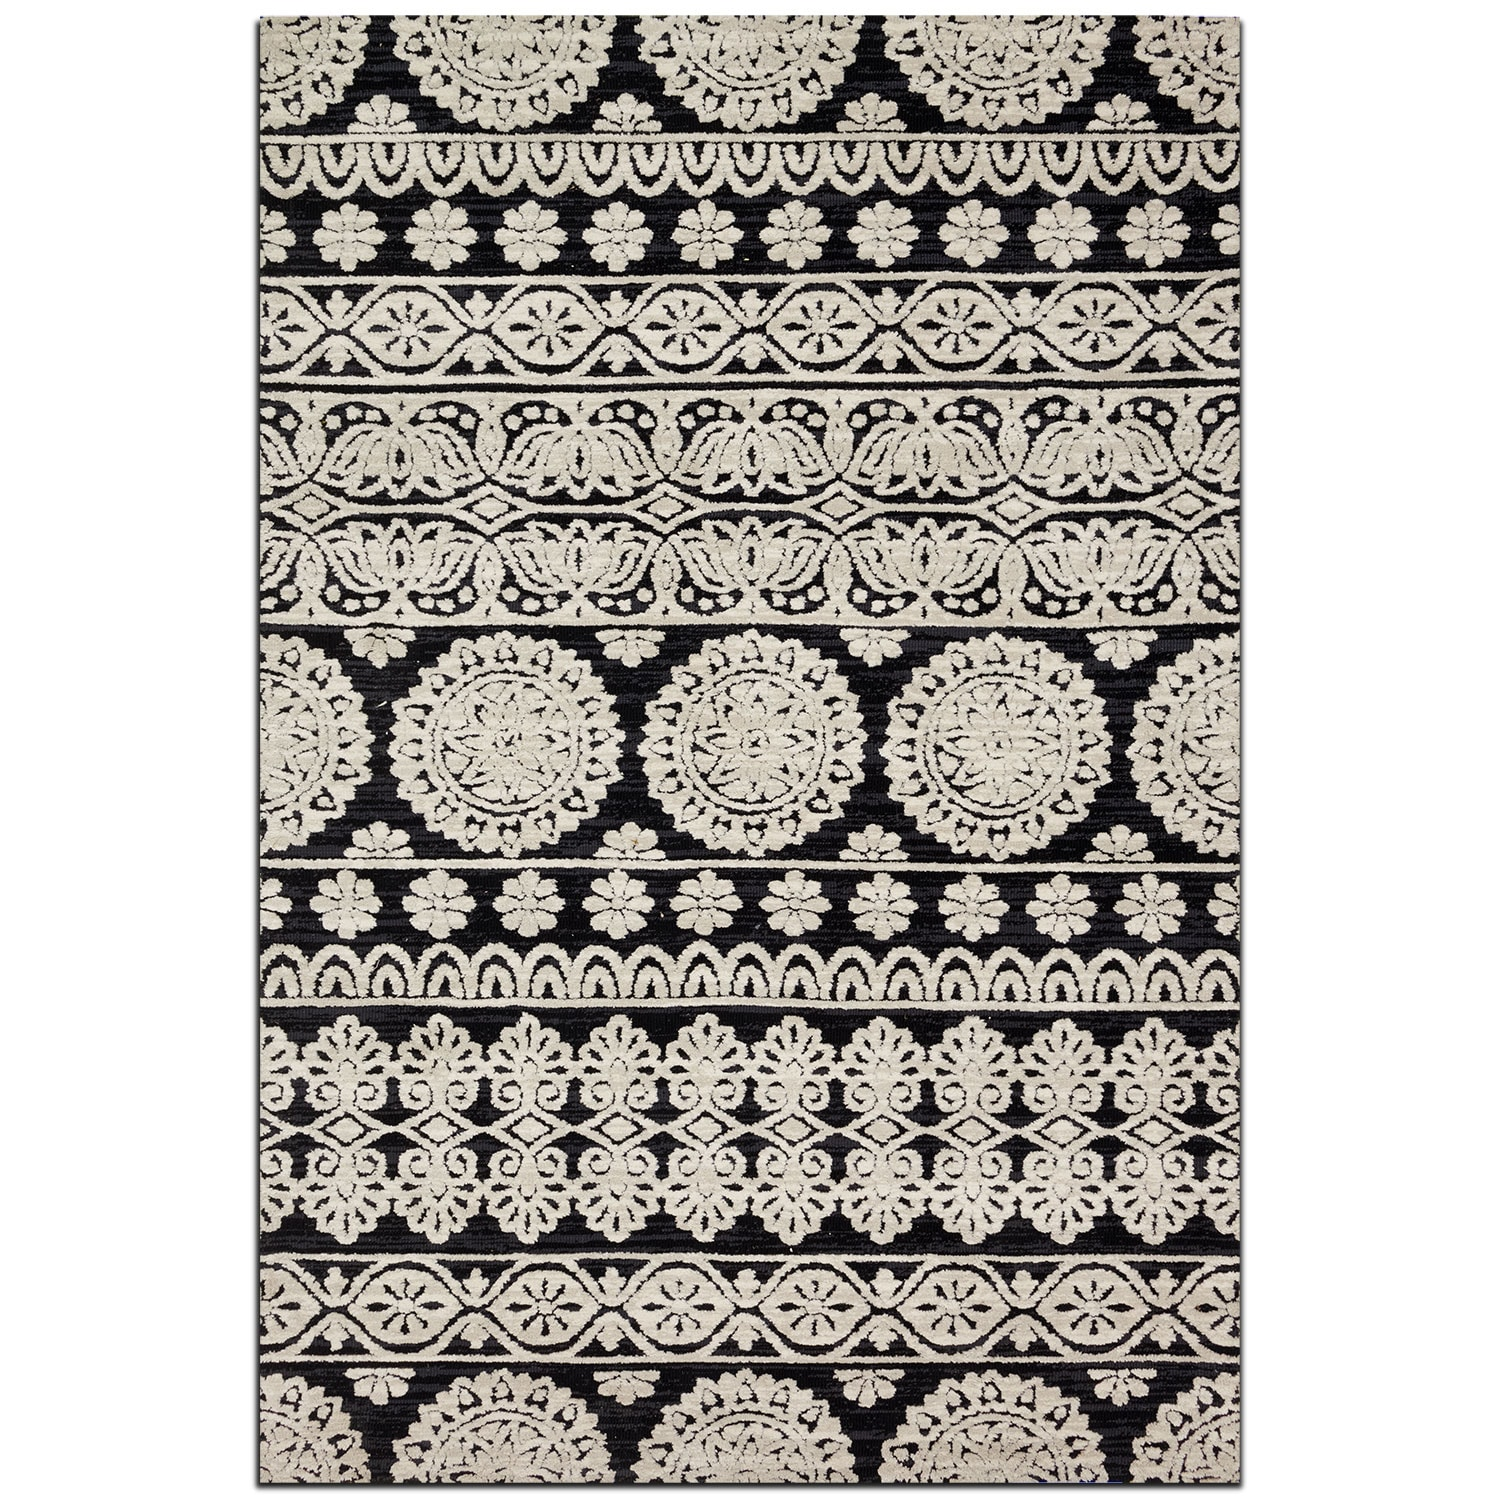 Rugs - Lotus 5' x 8' Rug - Black and Silver